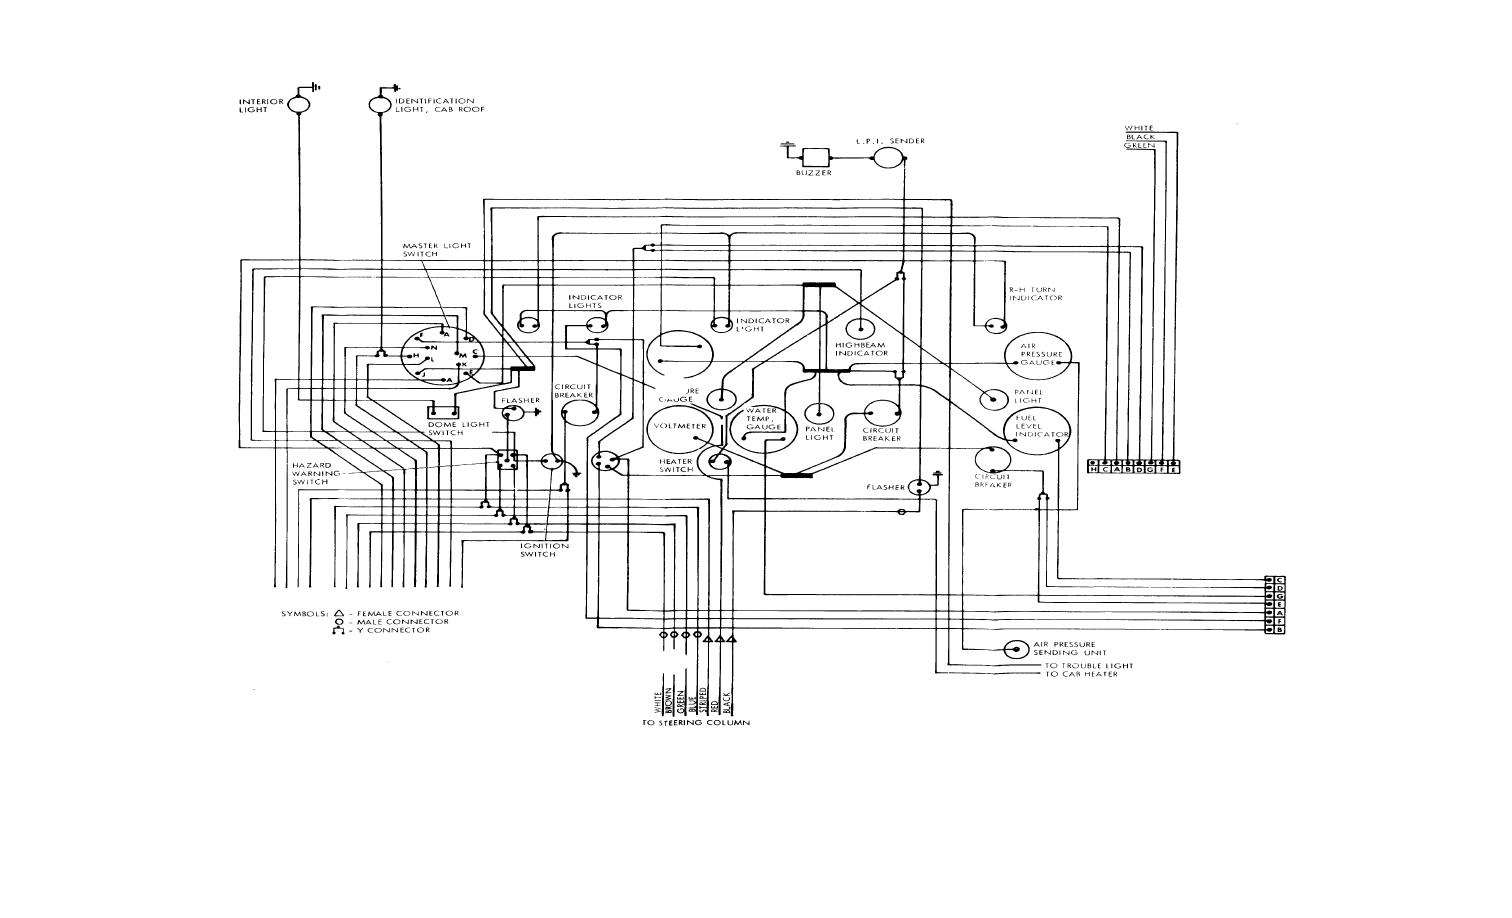 carrier wiring diagram air handler single phase asynchronous motor conditioner get free image